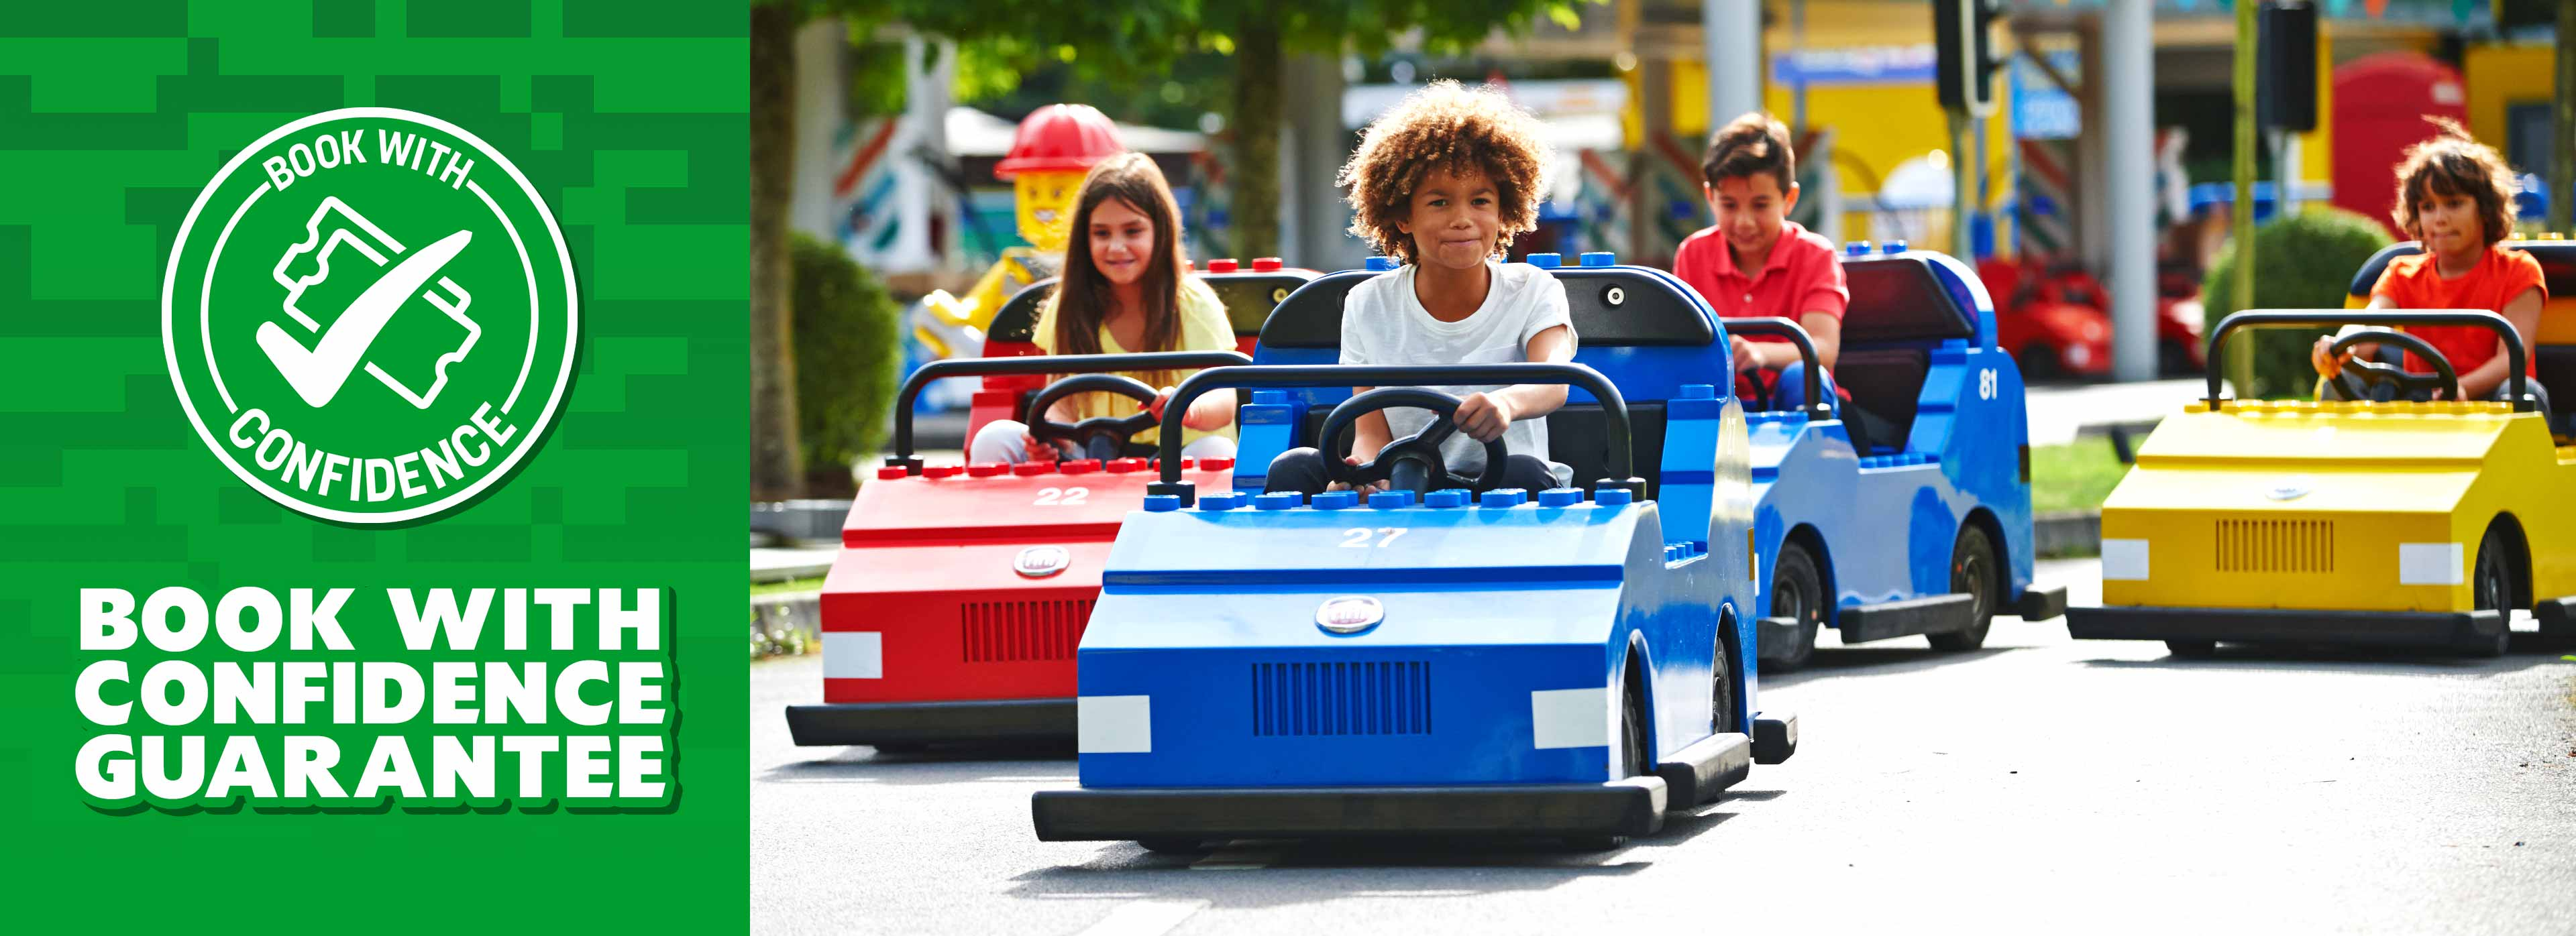 Book with confidence guarantee with LEGOLAND Holidays